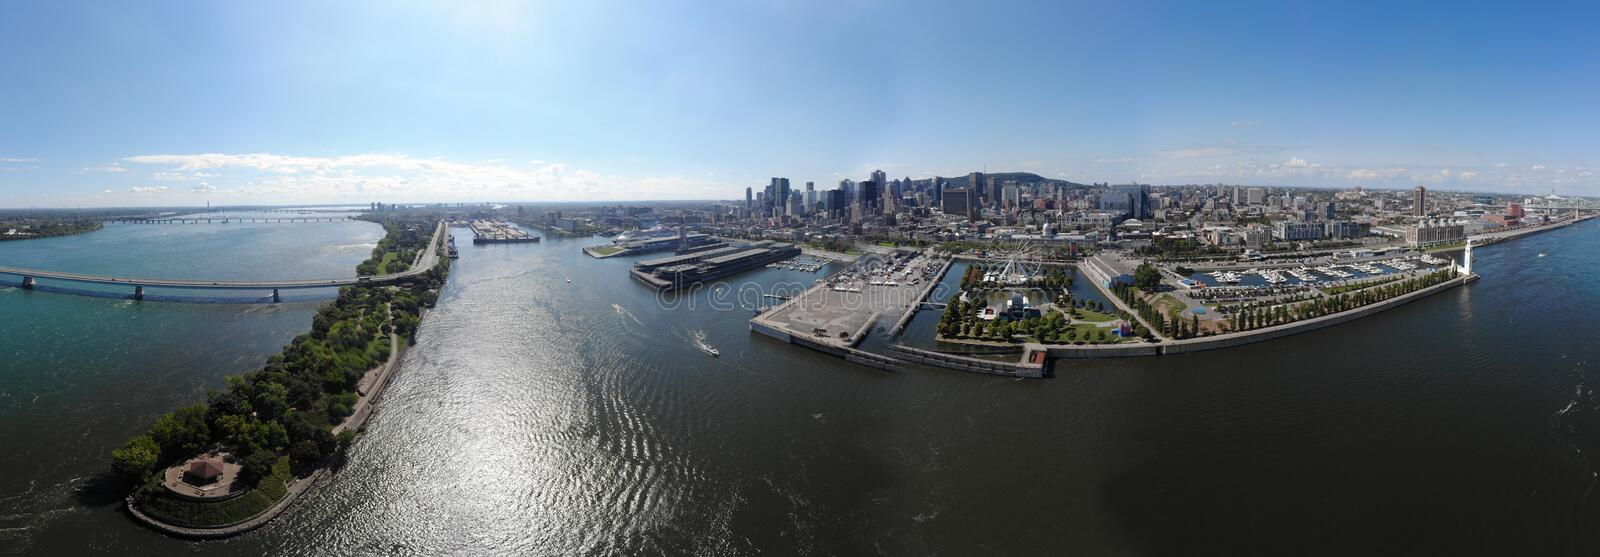 Aerial view 360 panorama Montreal old port with urban architectures. stock image